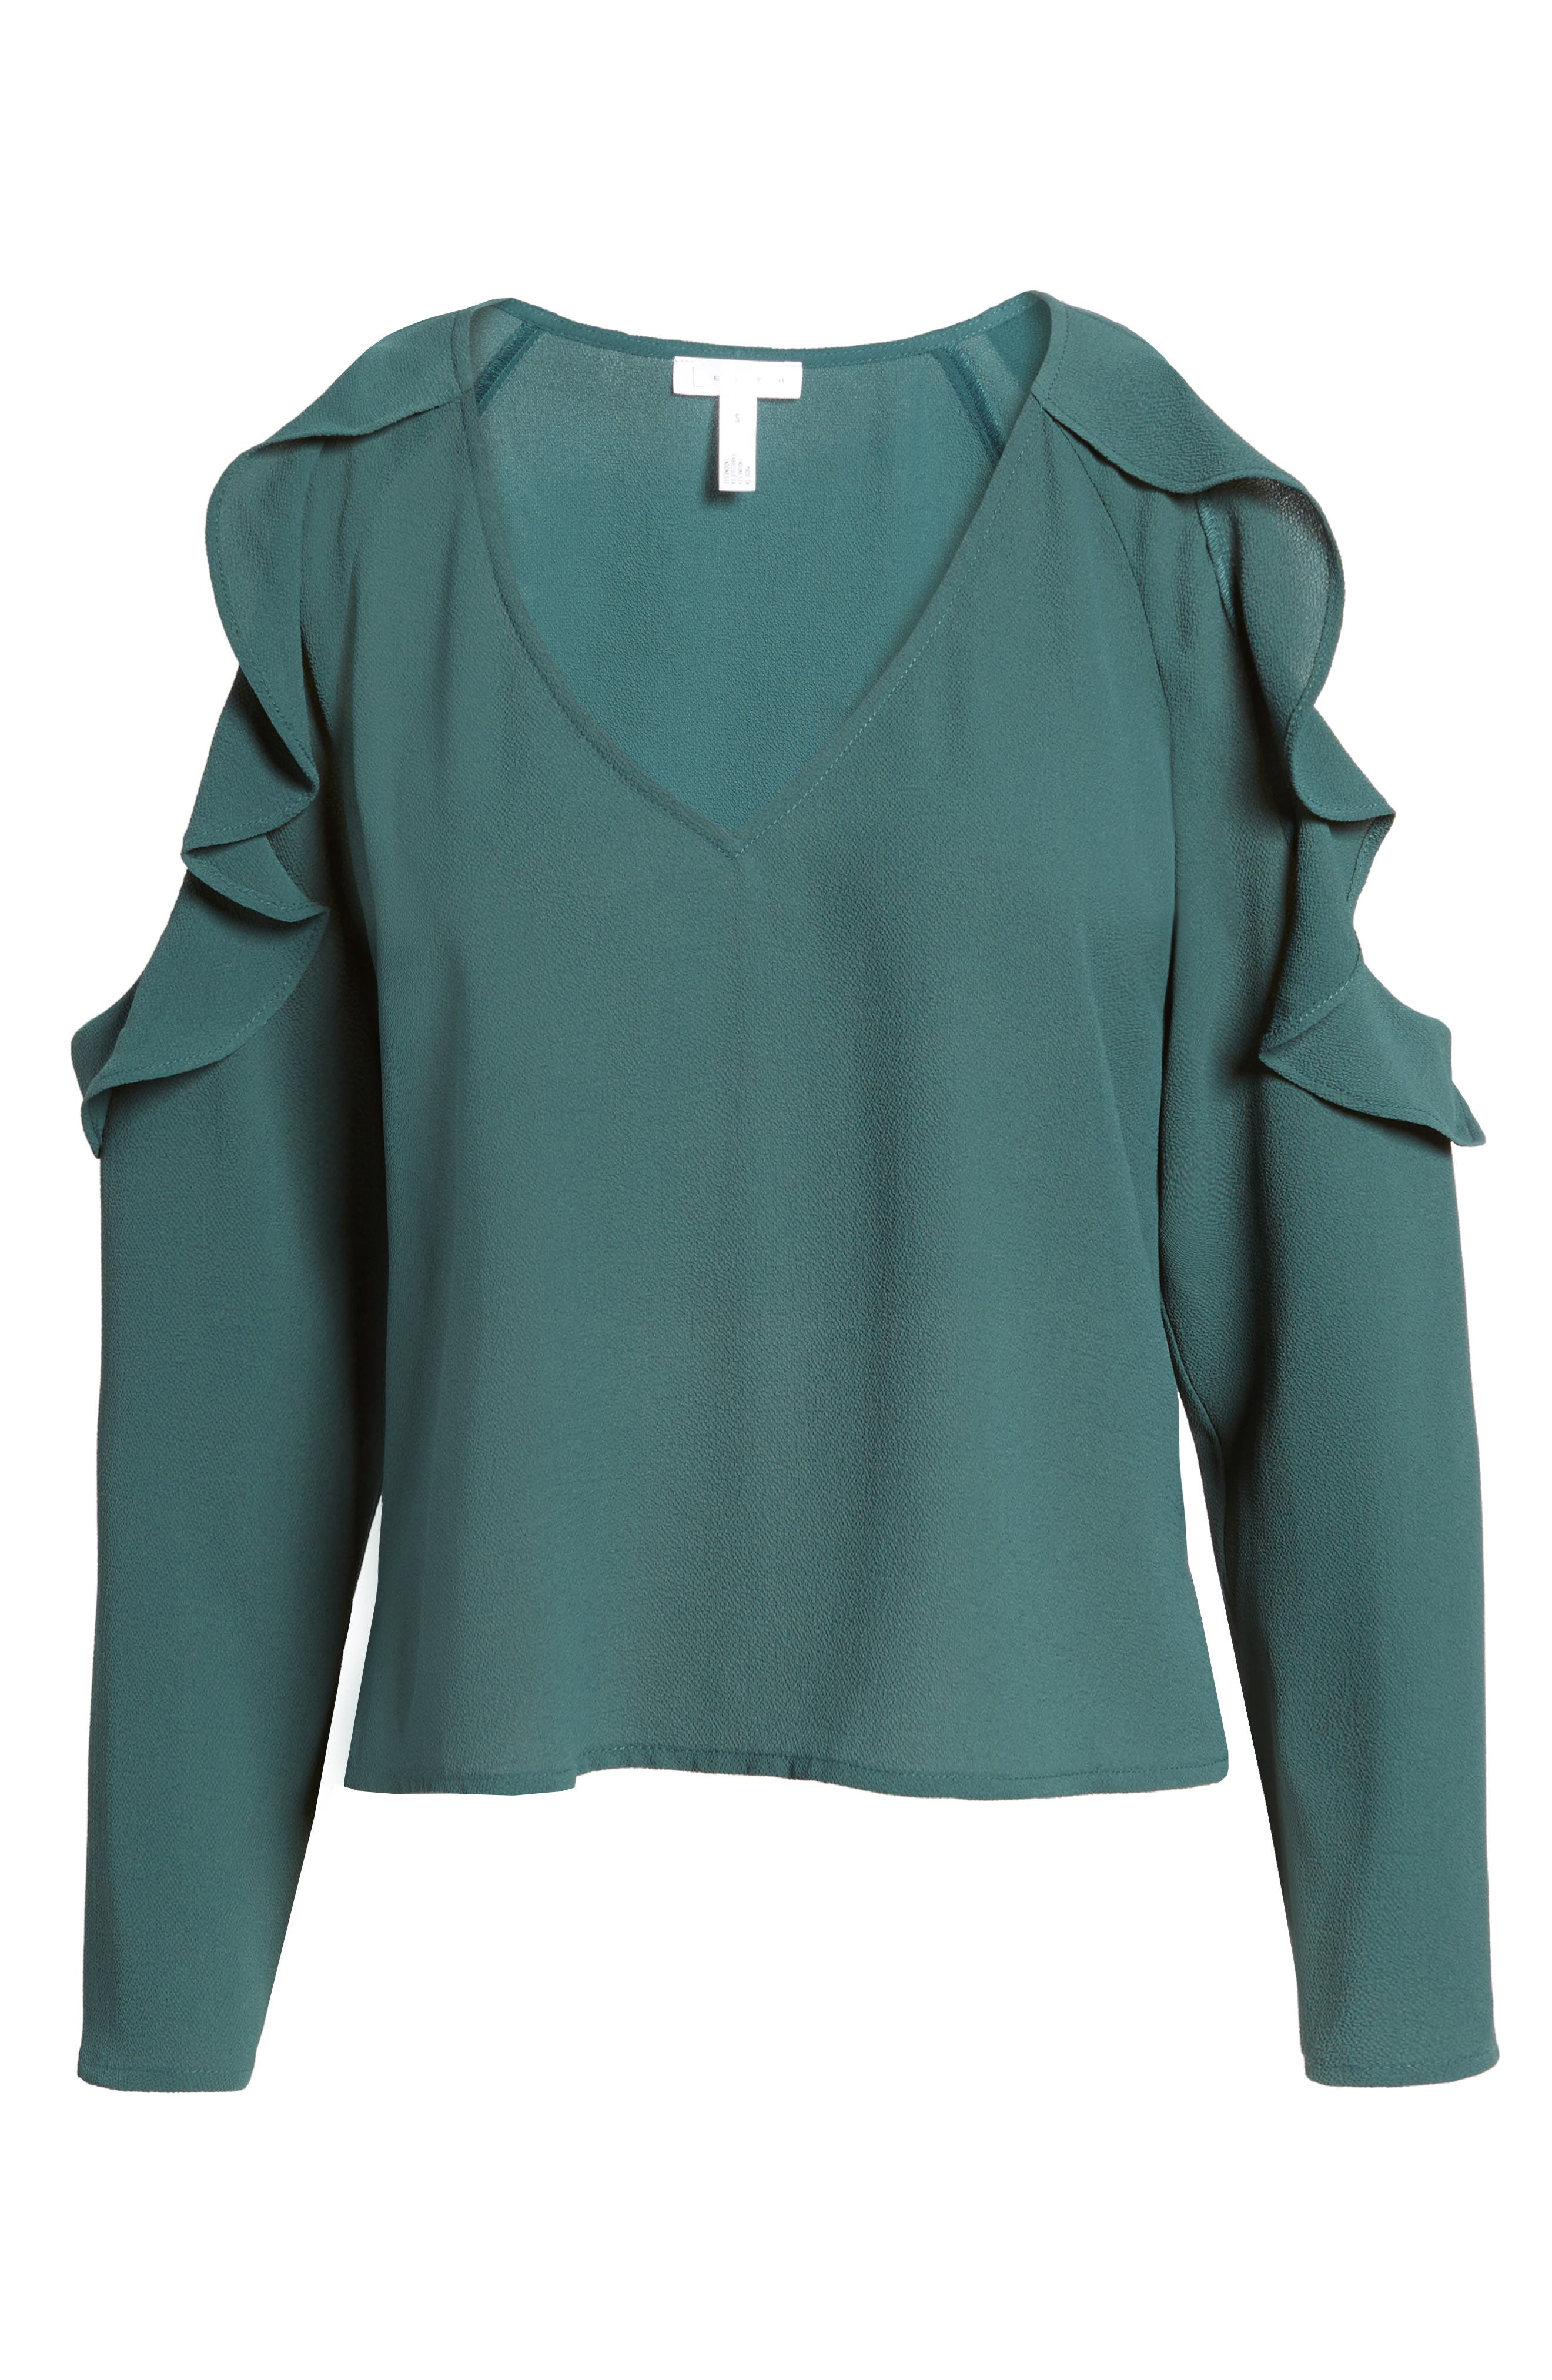 Cold Shoulder Ruffle Top,                             Alternate thumbnail 6, color,                             310